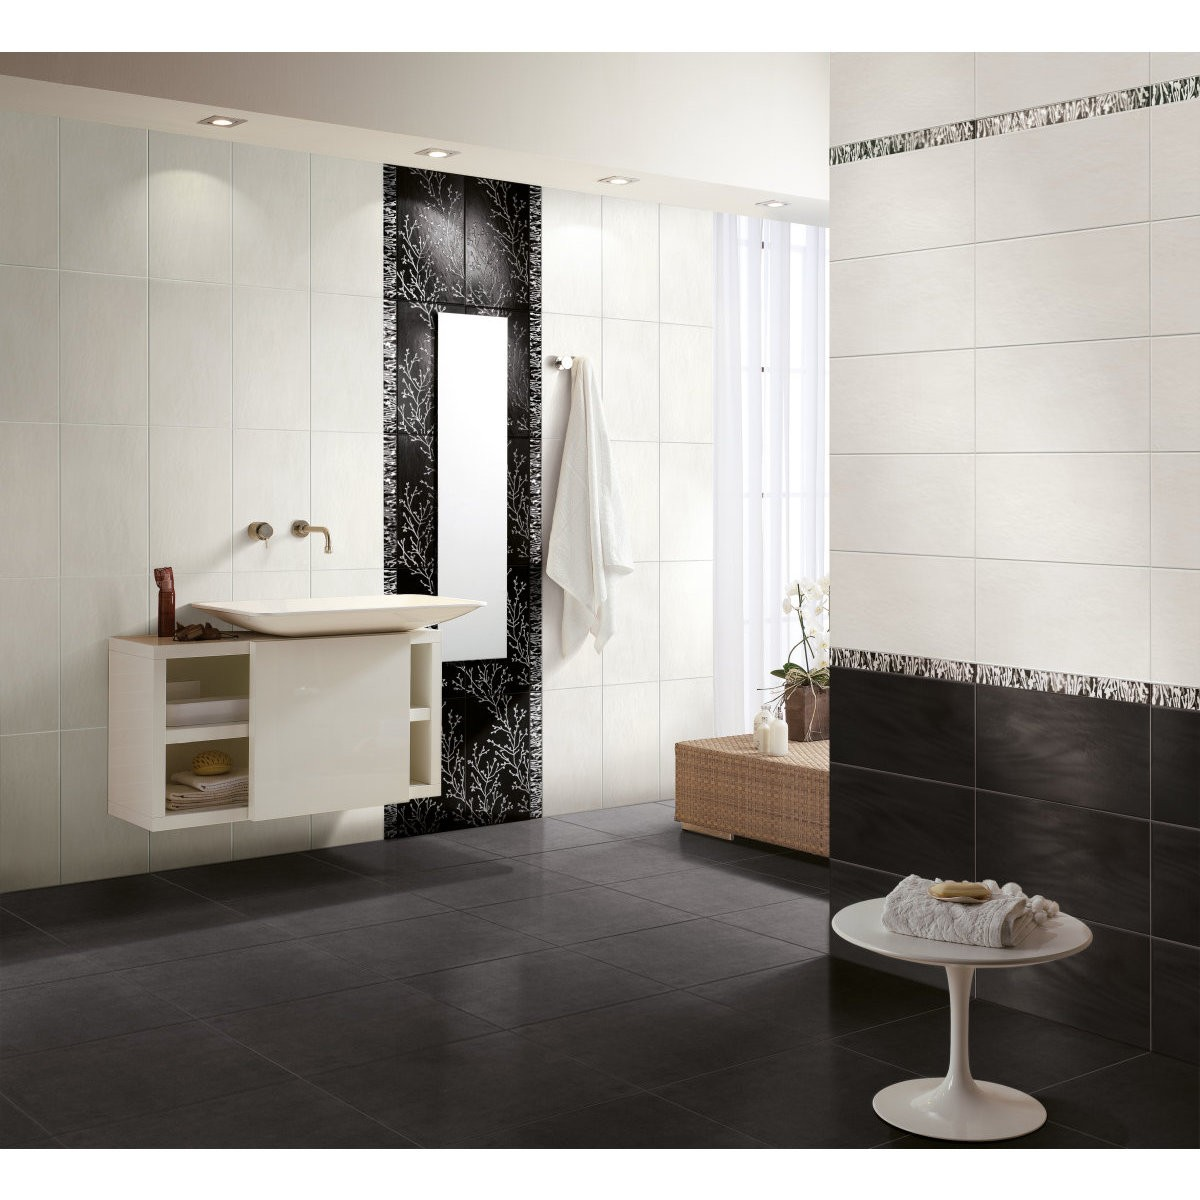 Point p salle de bain stunning amazing point p salle de for Carrelage mural salle de bain design